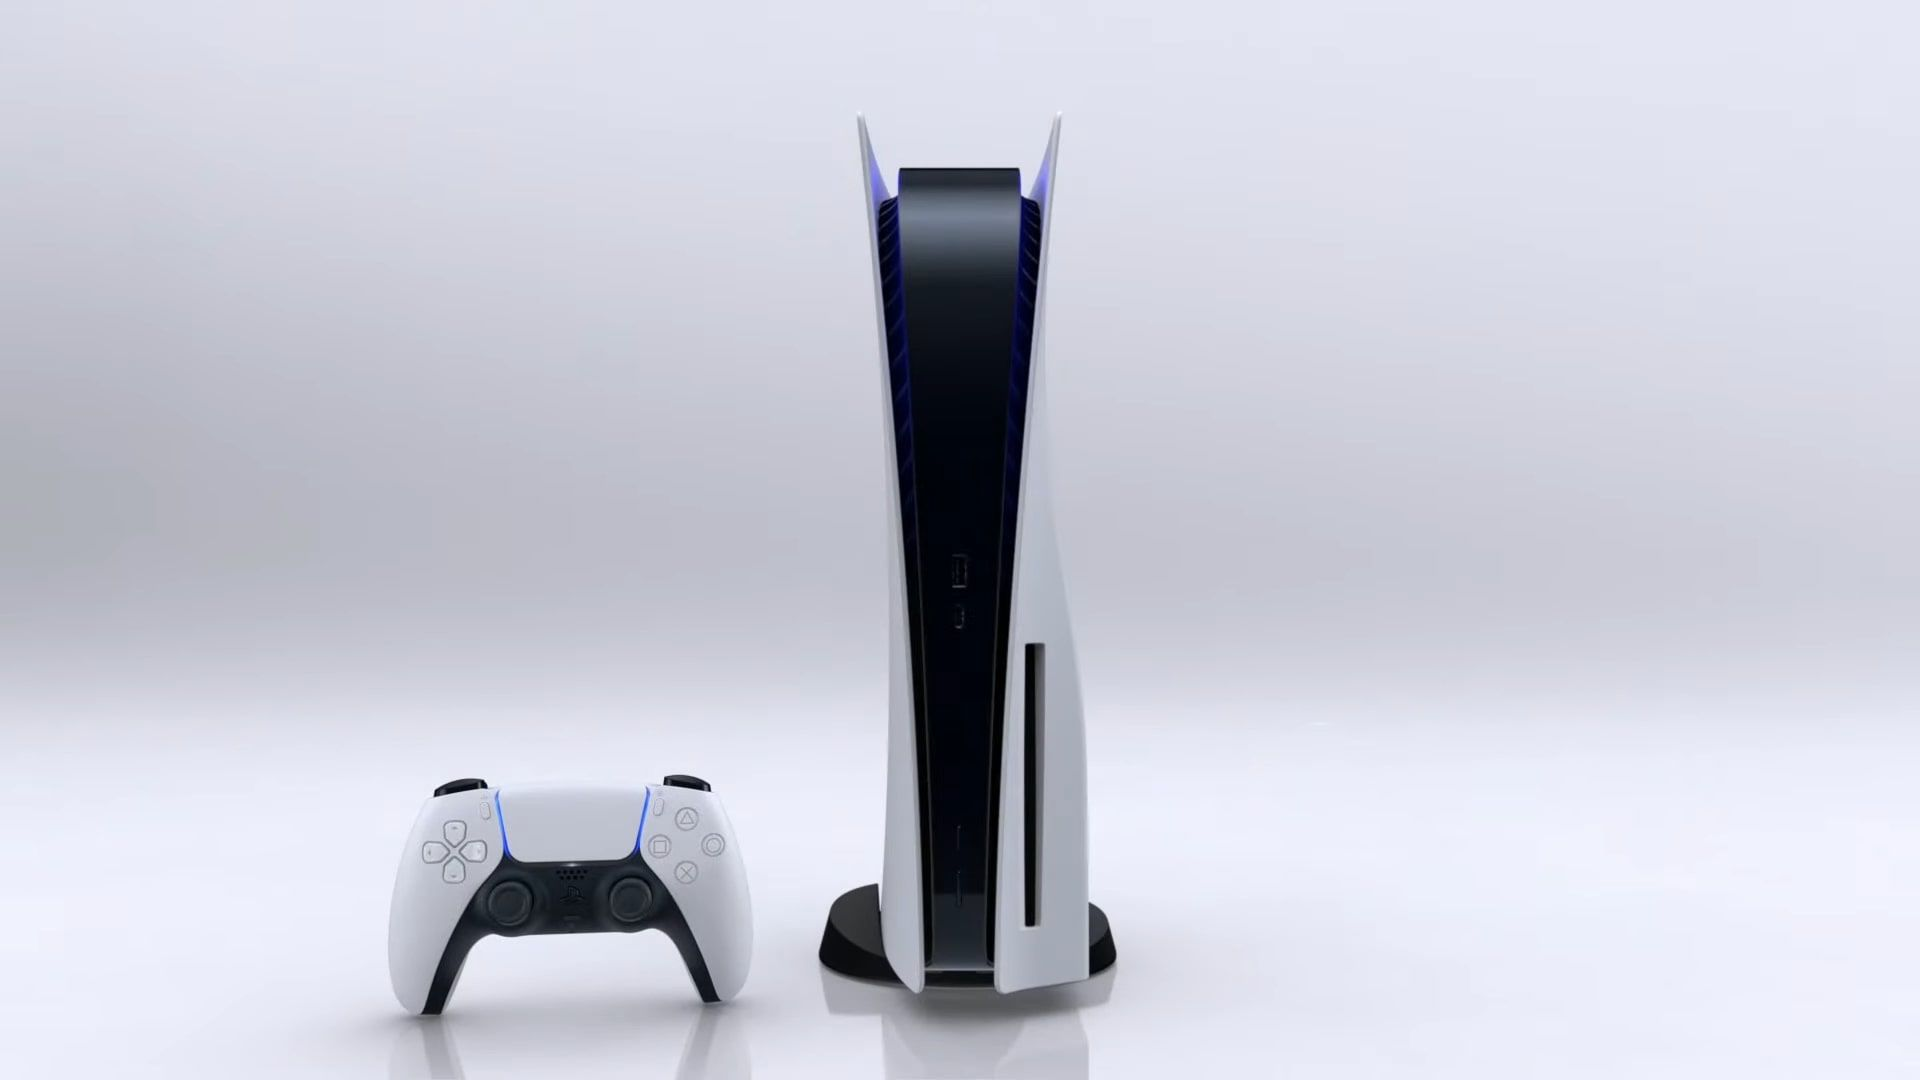 I'm looking to buy a PS5 for $600